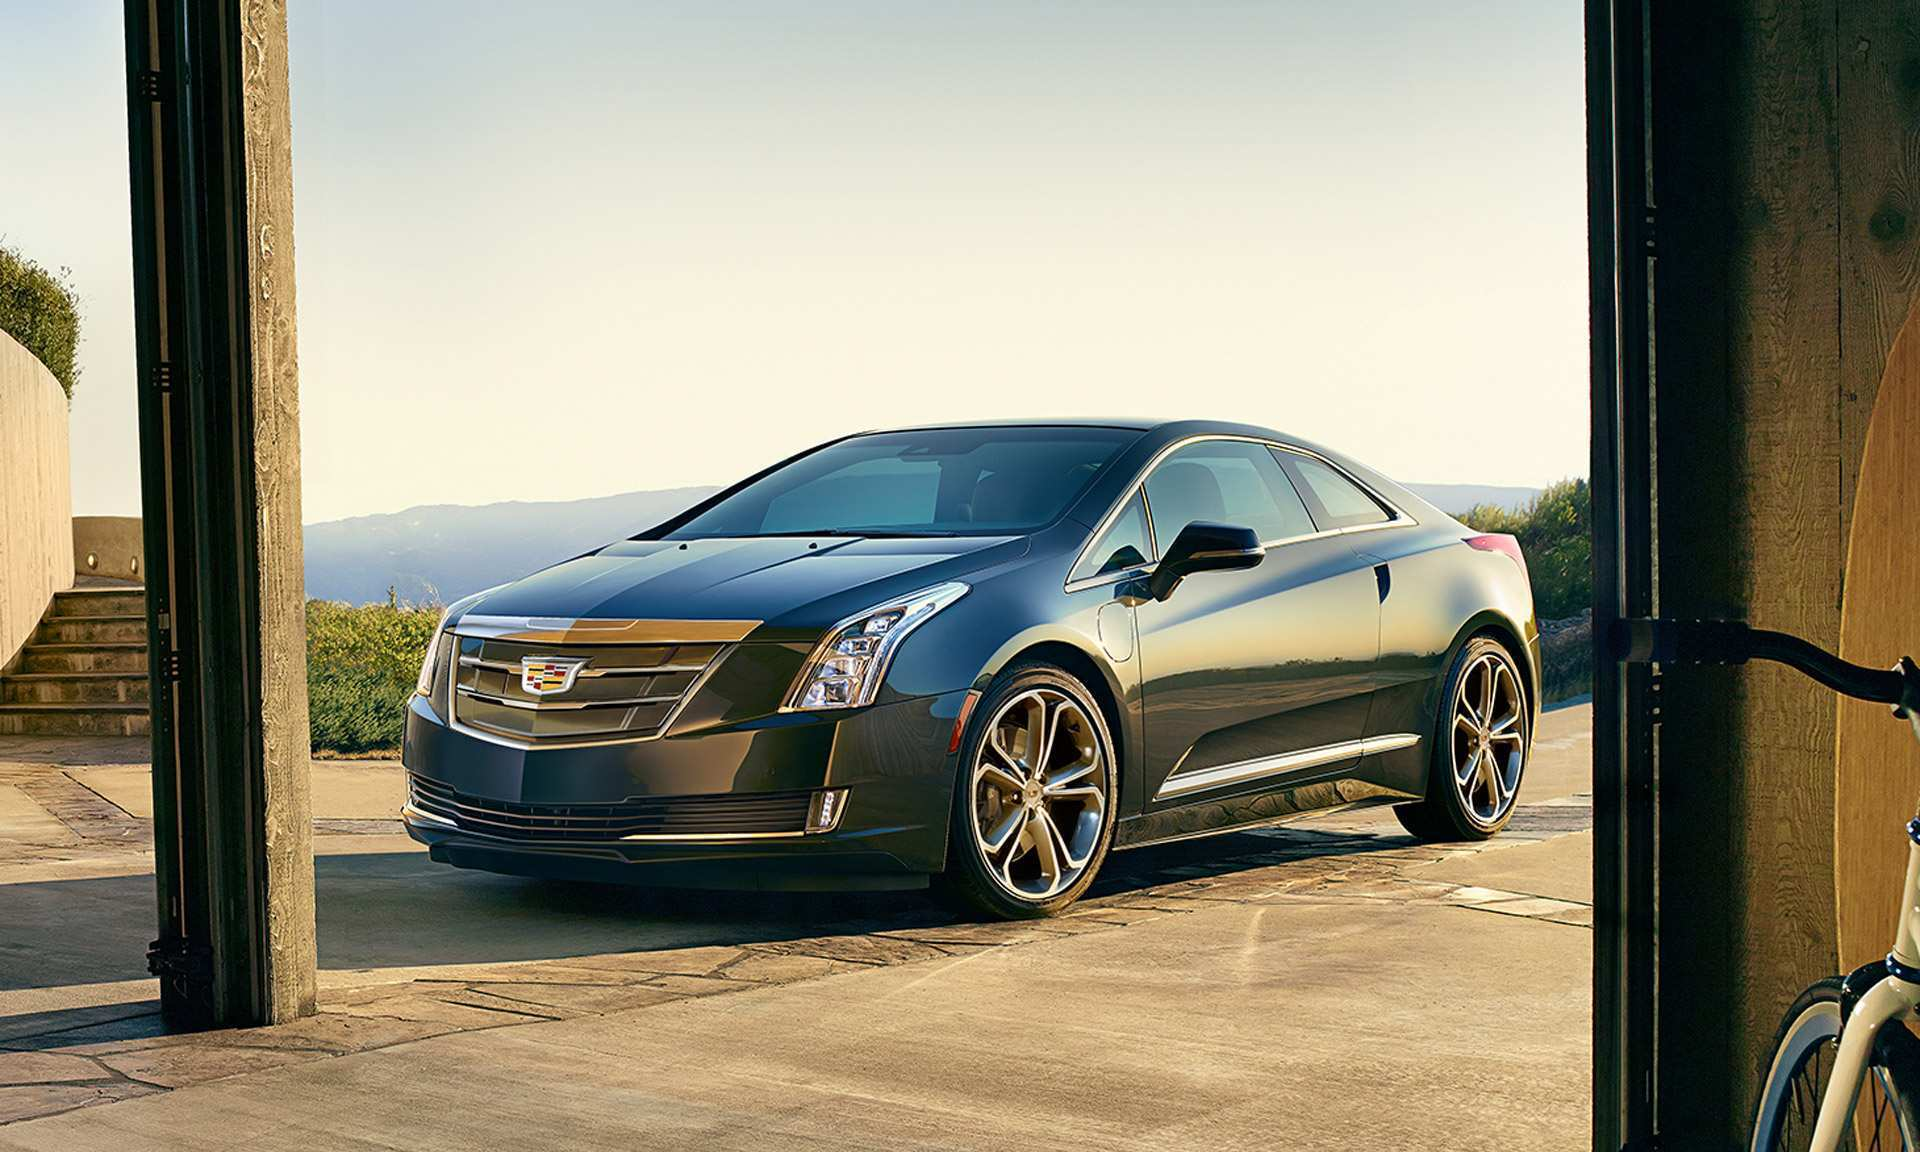 37 Best Review 2020 Cadillac ELR S Exterior for 2020 Cadillac ELR S